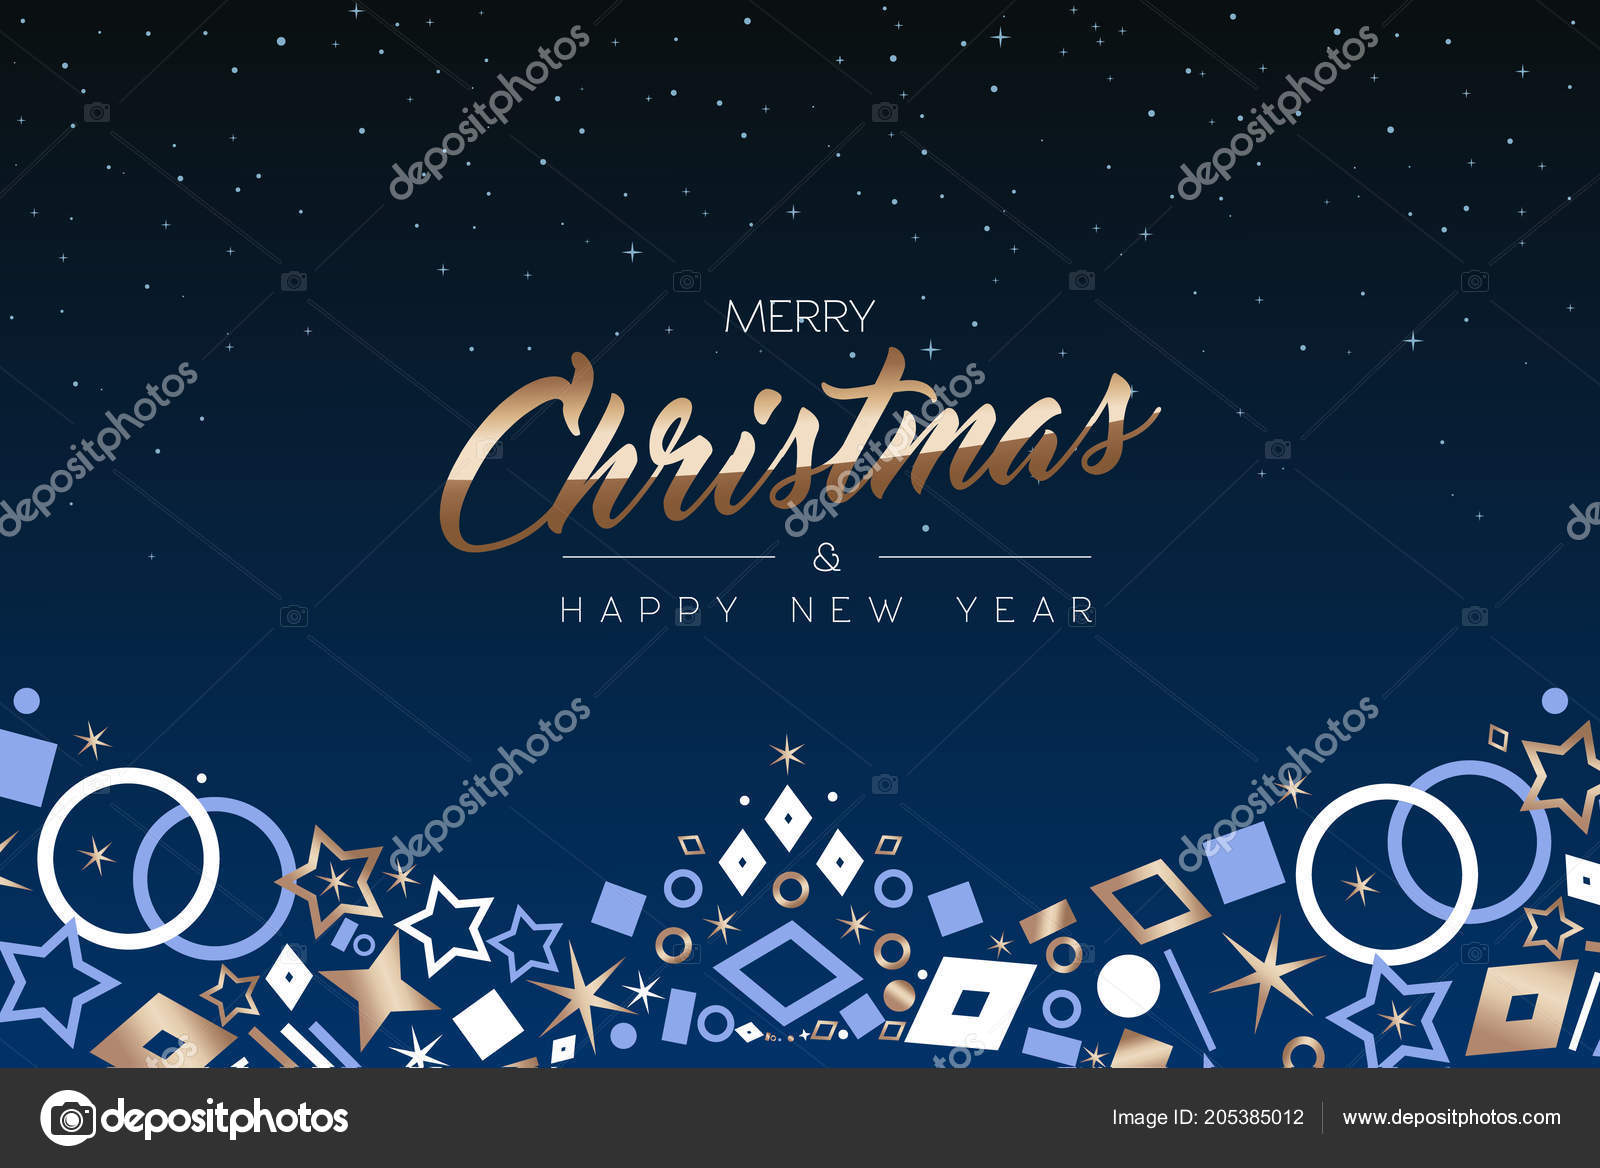 merry christmas happy new year greeting card luxury xmas icon stock vector